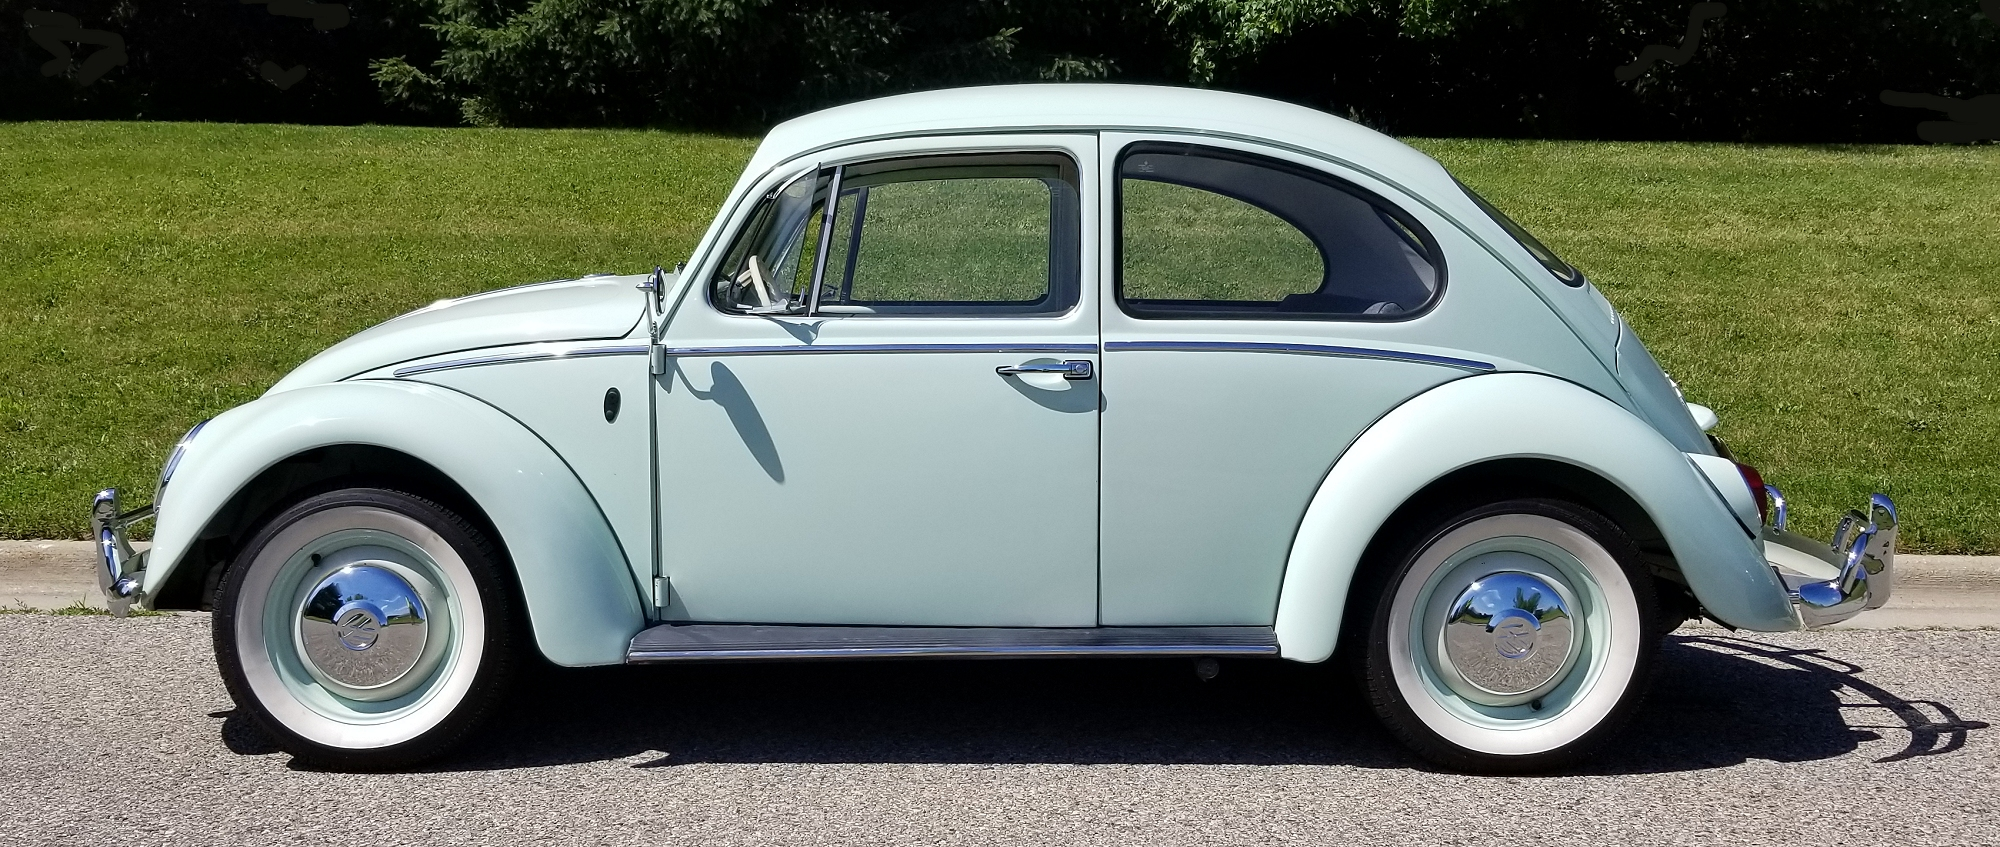 100 volkswagen car beetle old the classic vw show june 12 2016 ca usa classiccult classic. Black Bedroom Furniture Sets. Home Design Ideas